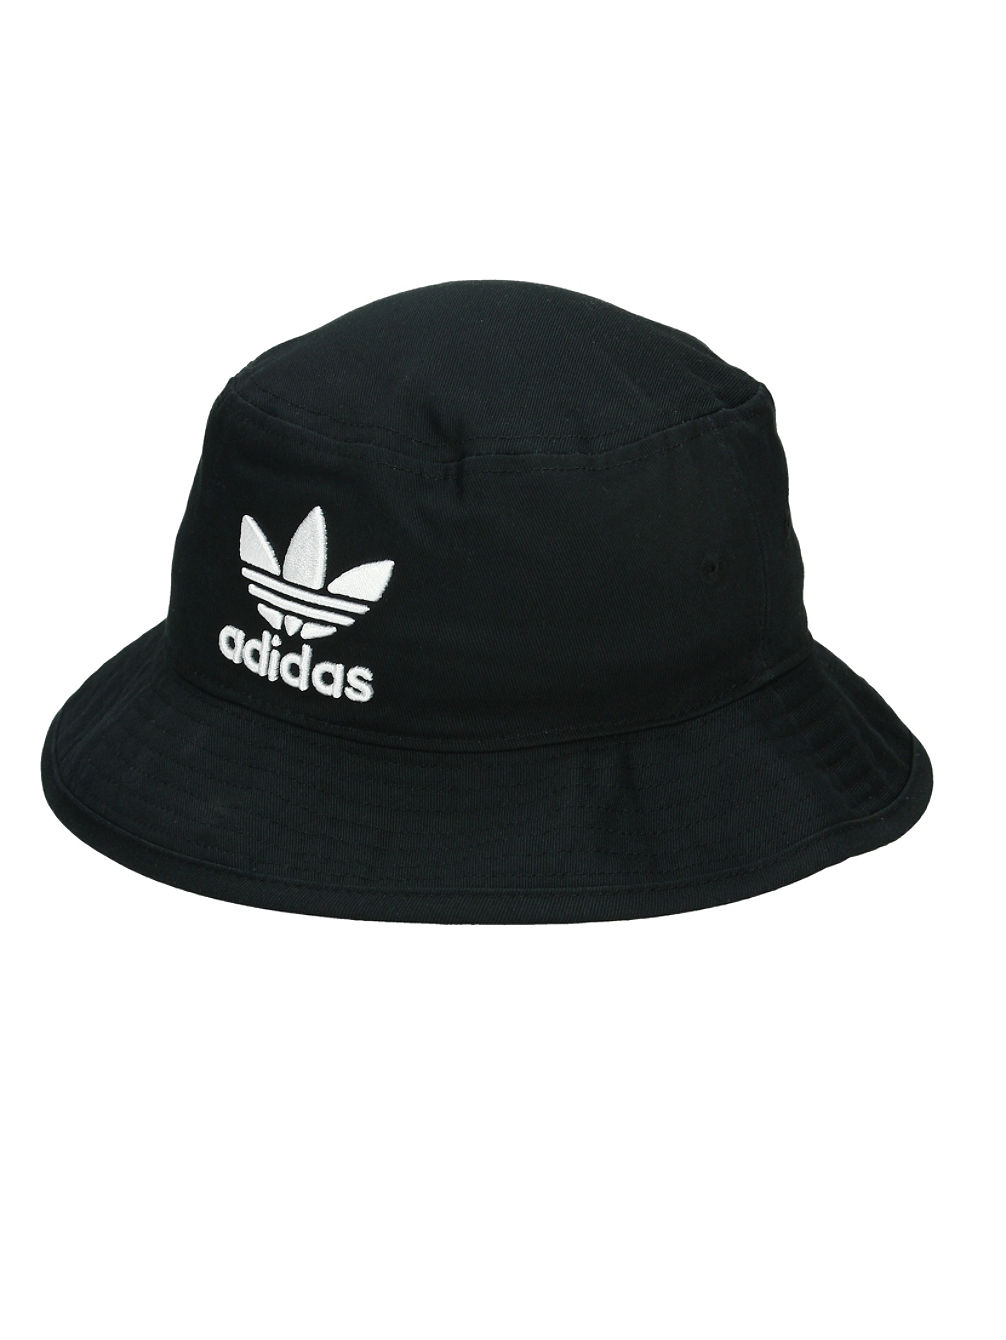 5a0c3e365e8 Buy adidas Originals Bucket Hat Ac online at Blue Tomato